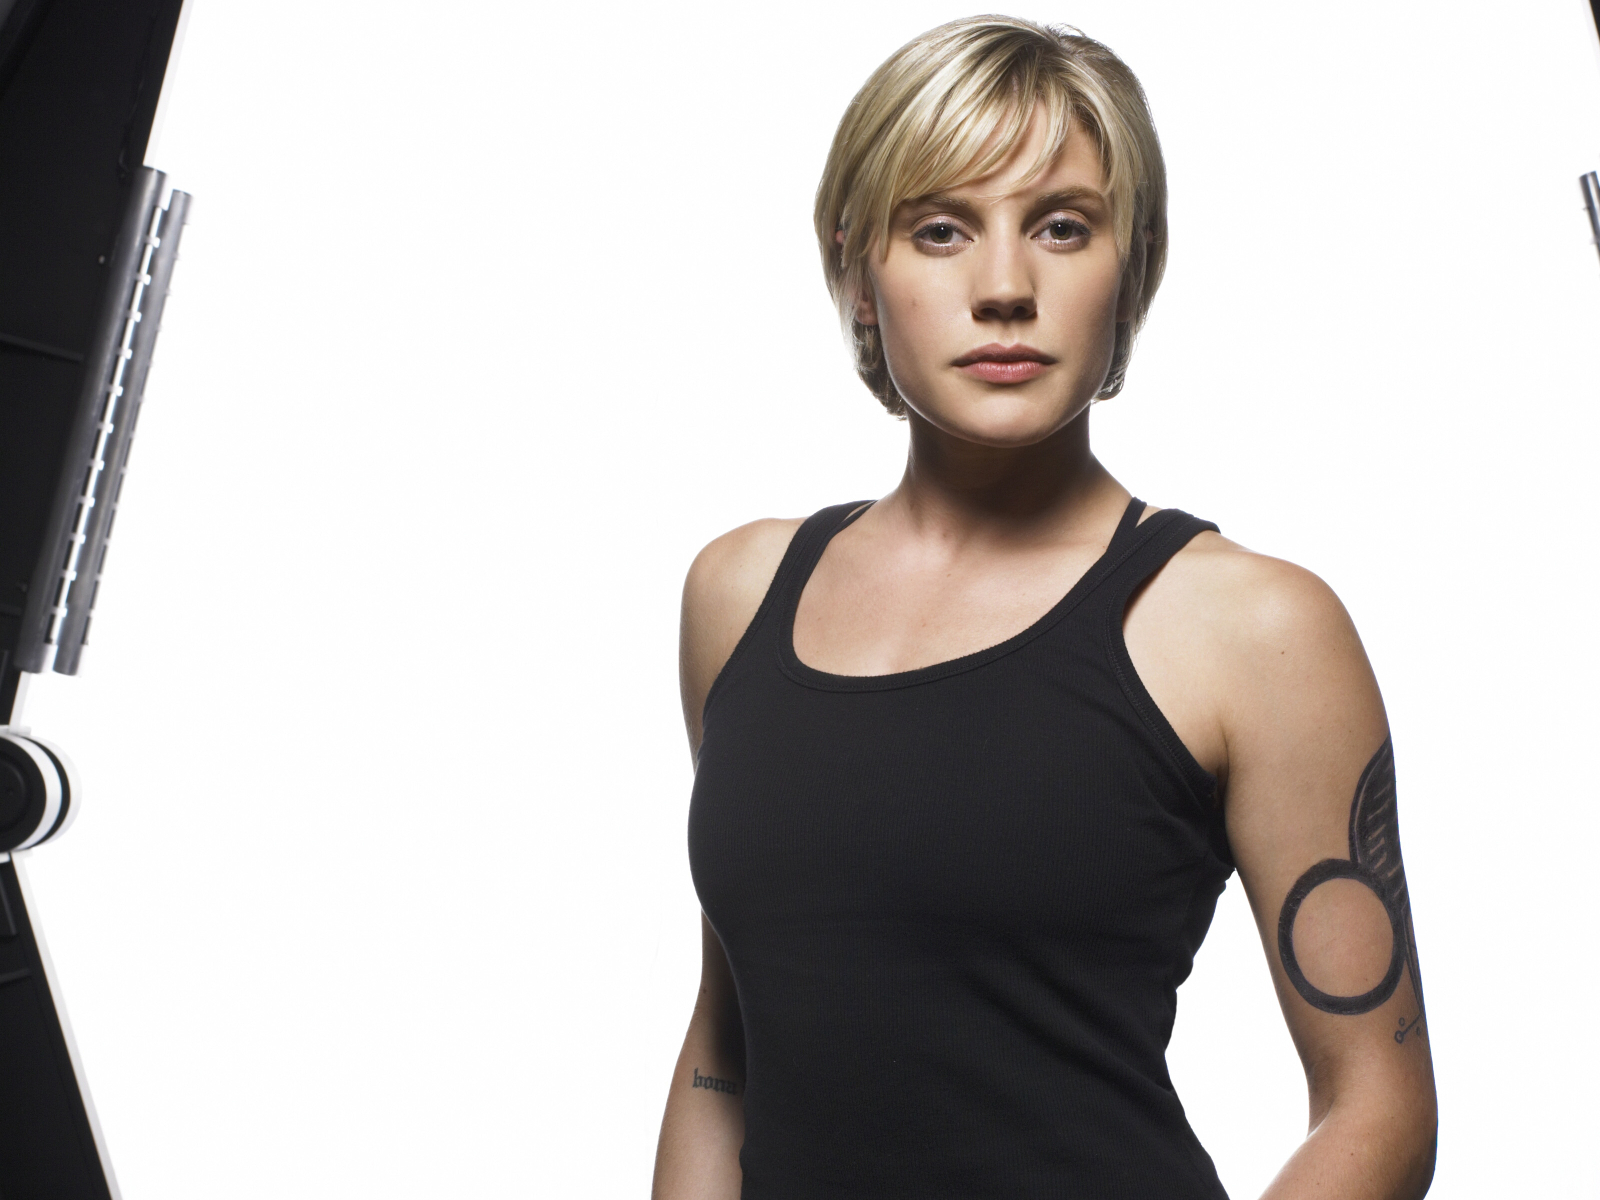 woman battlestar galactica katee HD Wallpaper